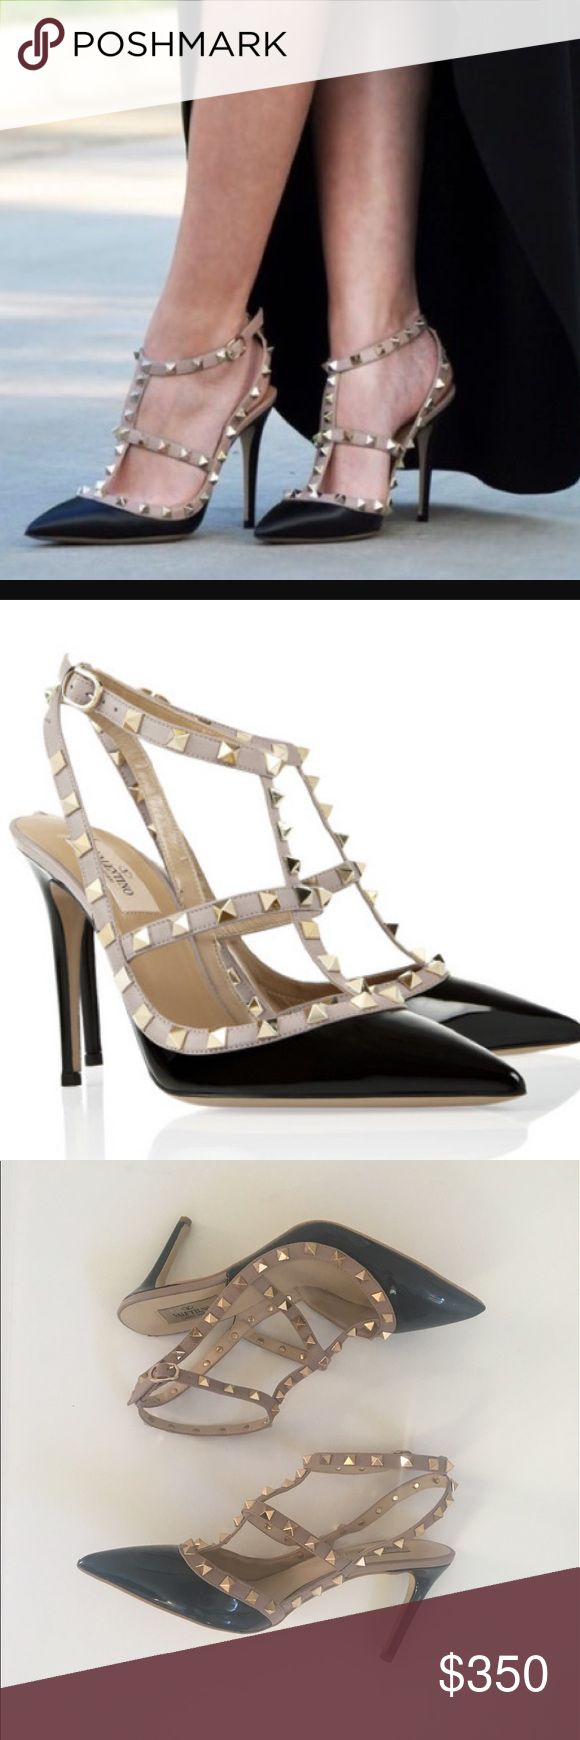 """100% Authentic Valentino Studded Pumps These are the most amazing """"IT"""" girl shoes you will ever own! Always classic, and always making a statement, just like you. 3.5"""" heel. 100% real and authentic Valentino shoes in pretty much perfect condition! Valentino Shoes"""